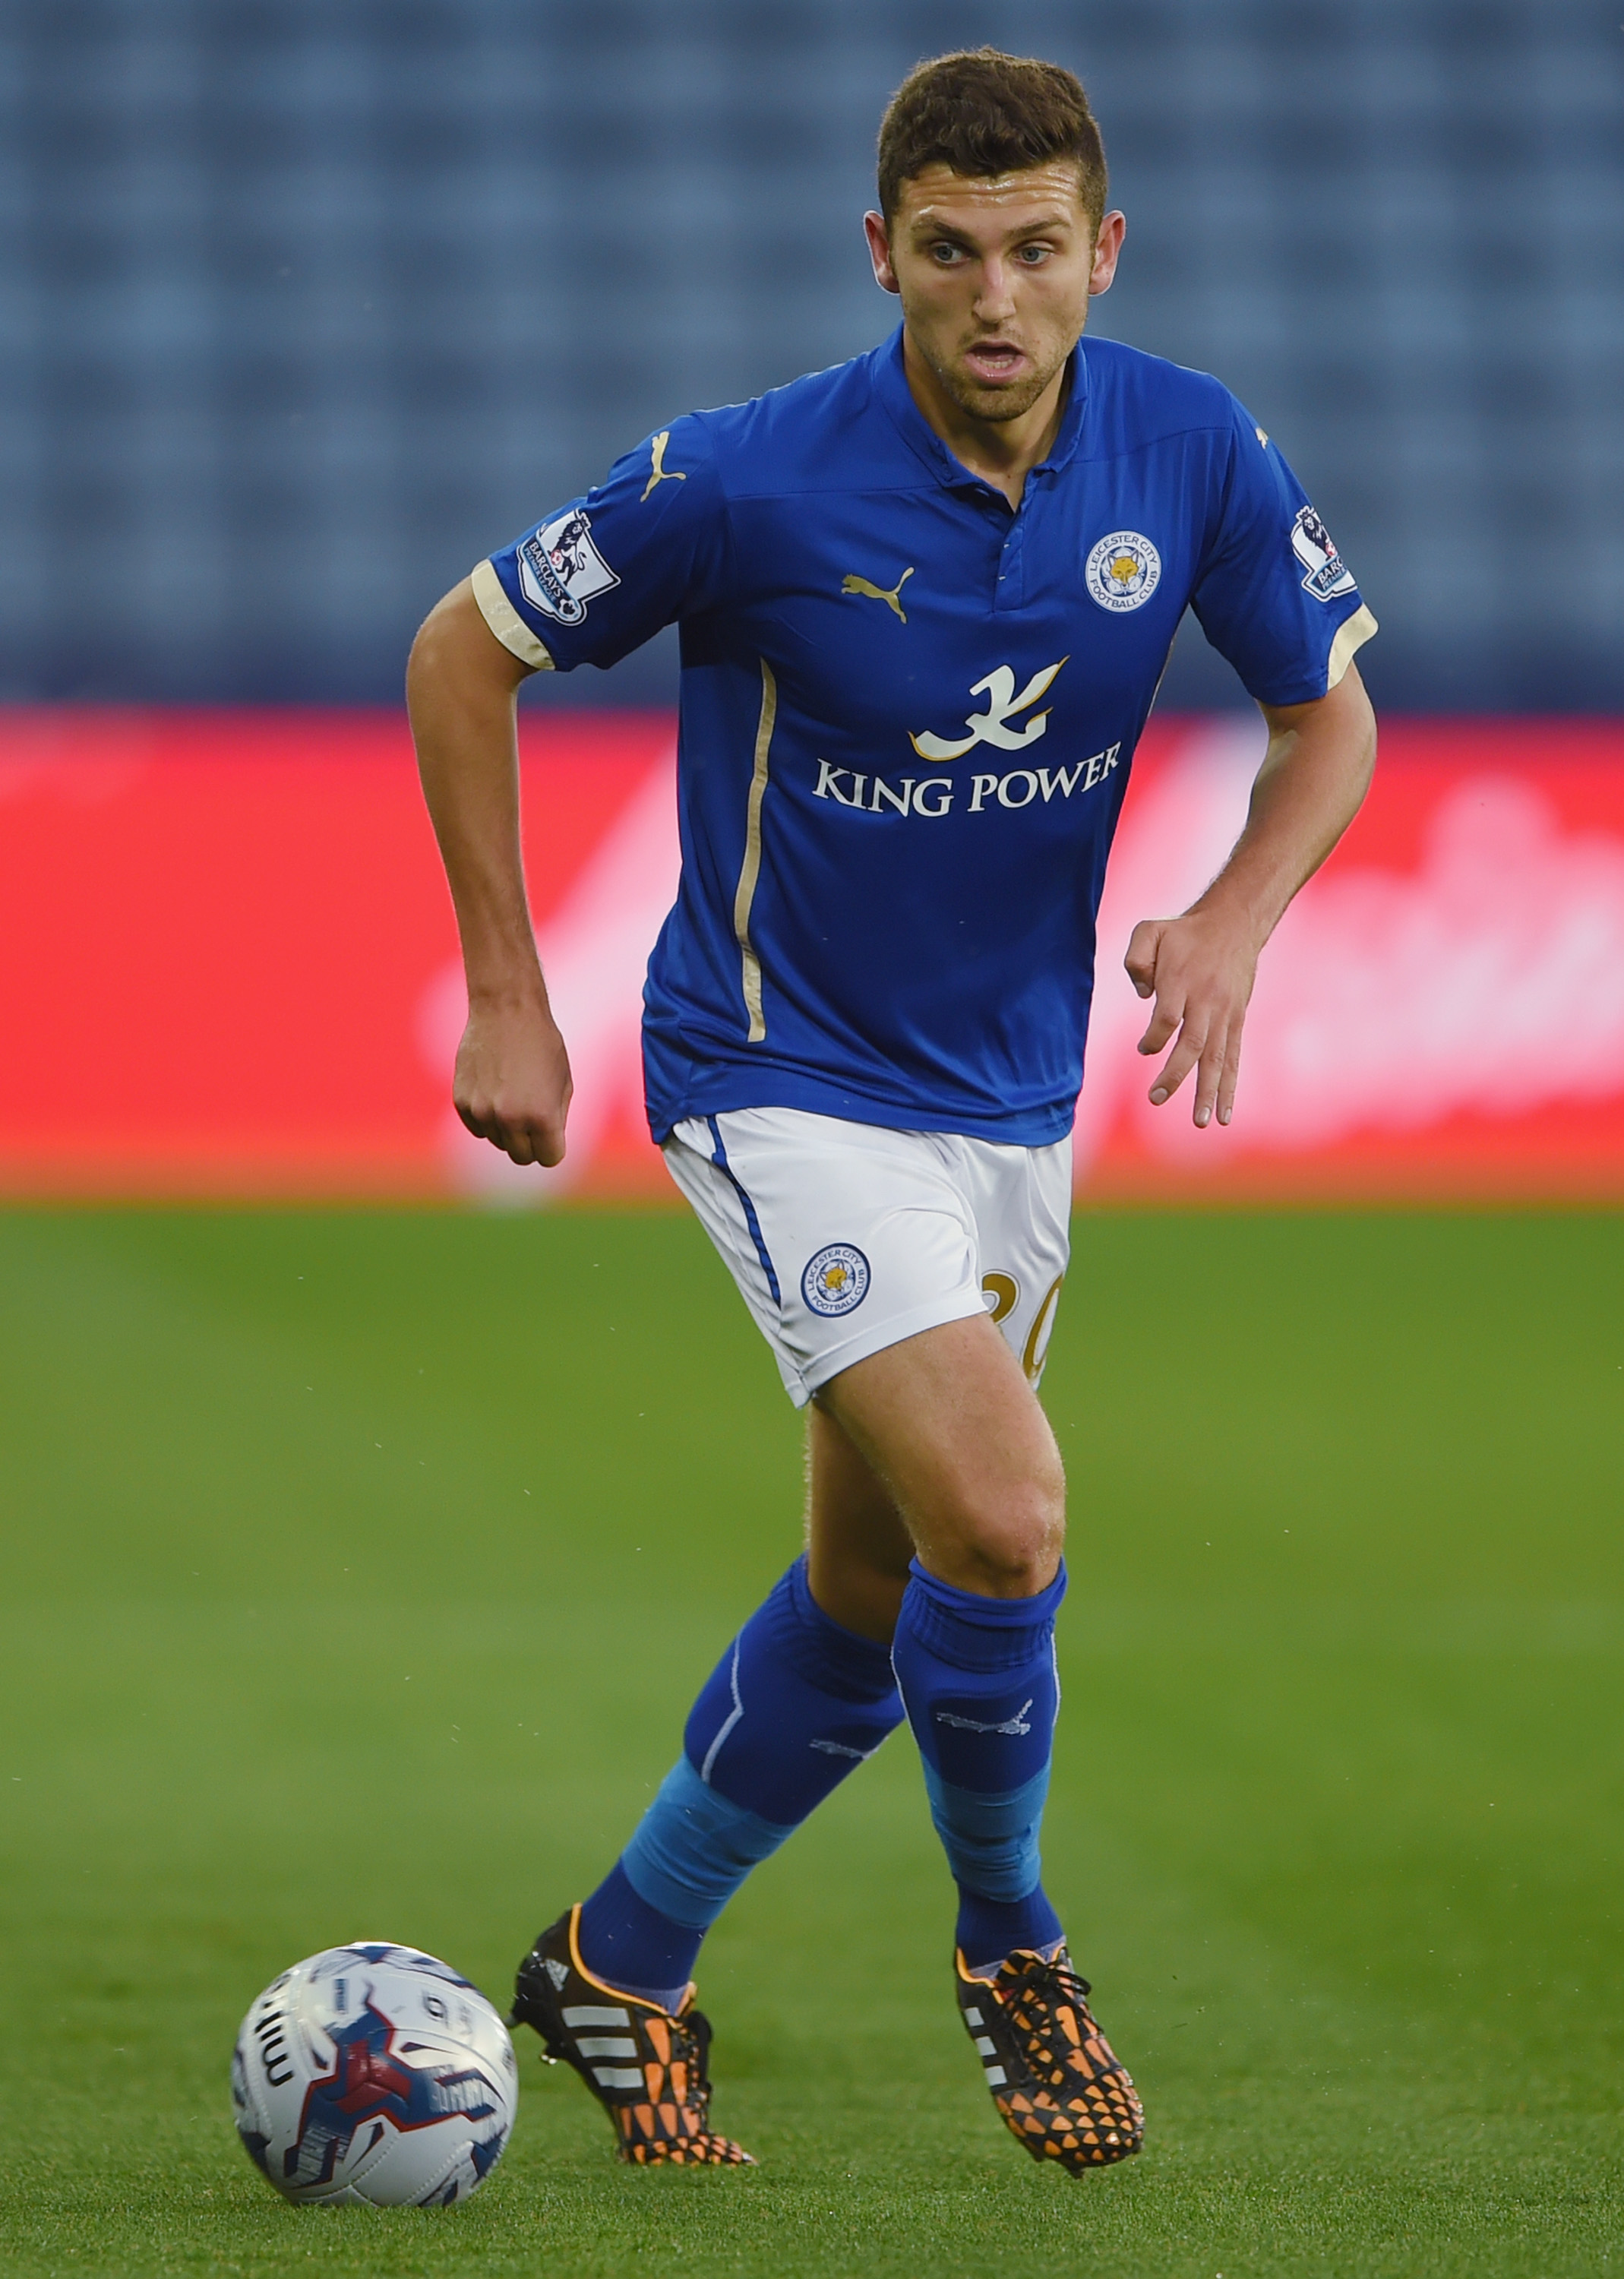 James Pearson of Leicester in action during the Capital One Cup second round match between Leicester City and Shrewsbury Town at The King Power Stadium on Aug. 26, 2014 in Leicester, England.